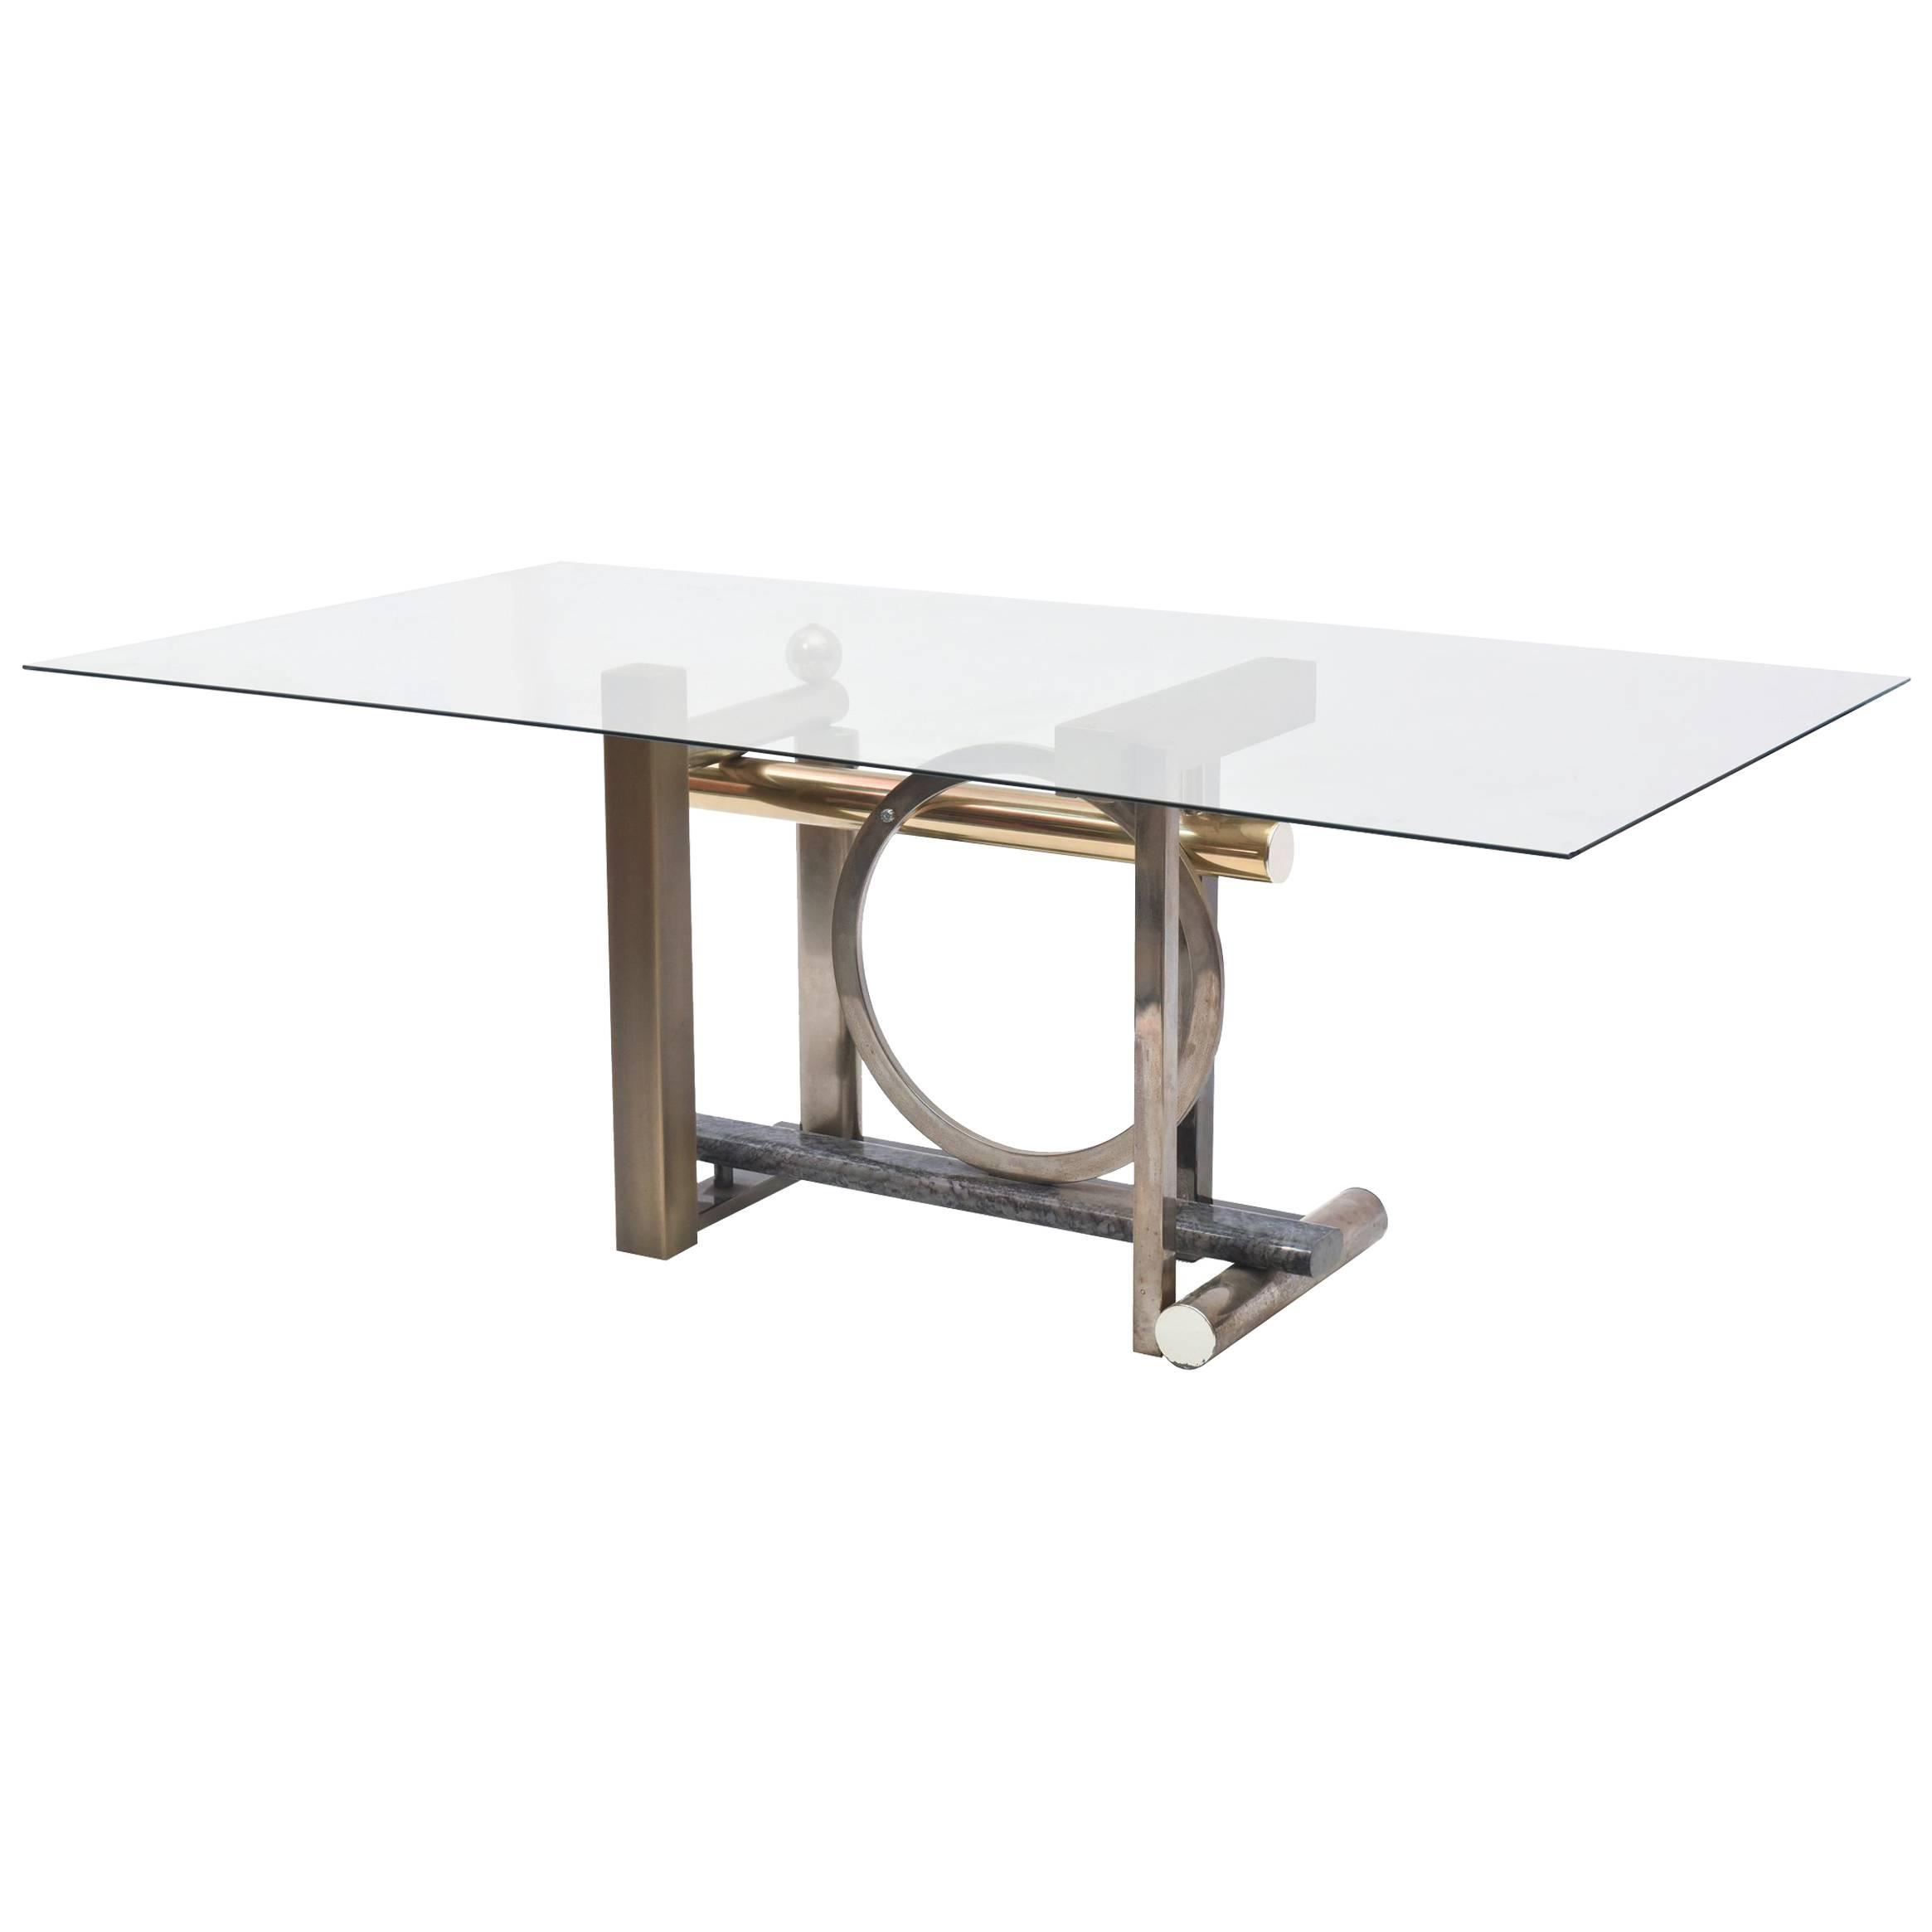 Design Institute America Furniture - 155 For Sale At 1Stdibs pertaining to Mix Leather Imprint Metal Frame Console Tables (Image 5 of 30)